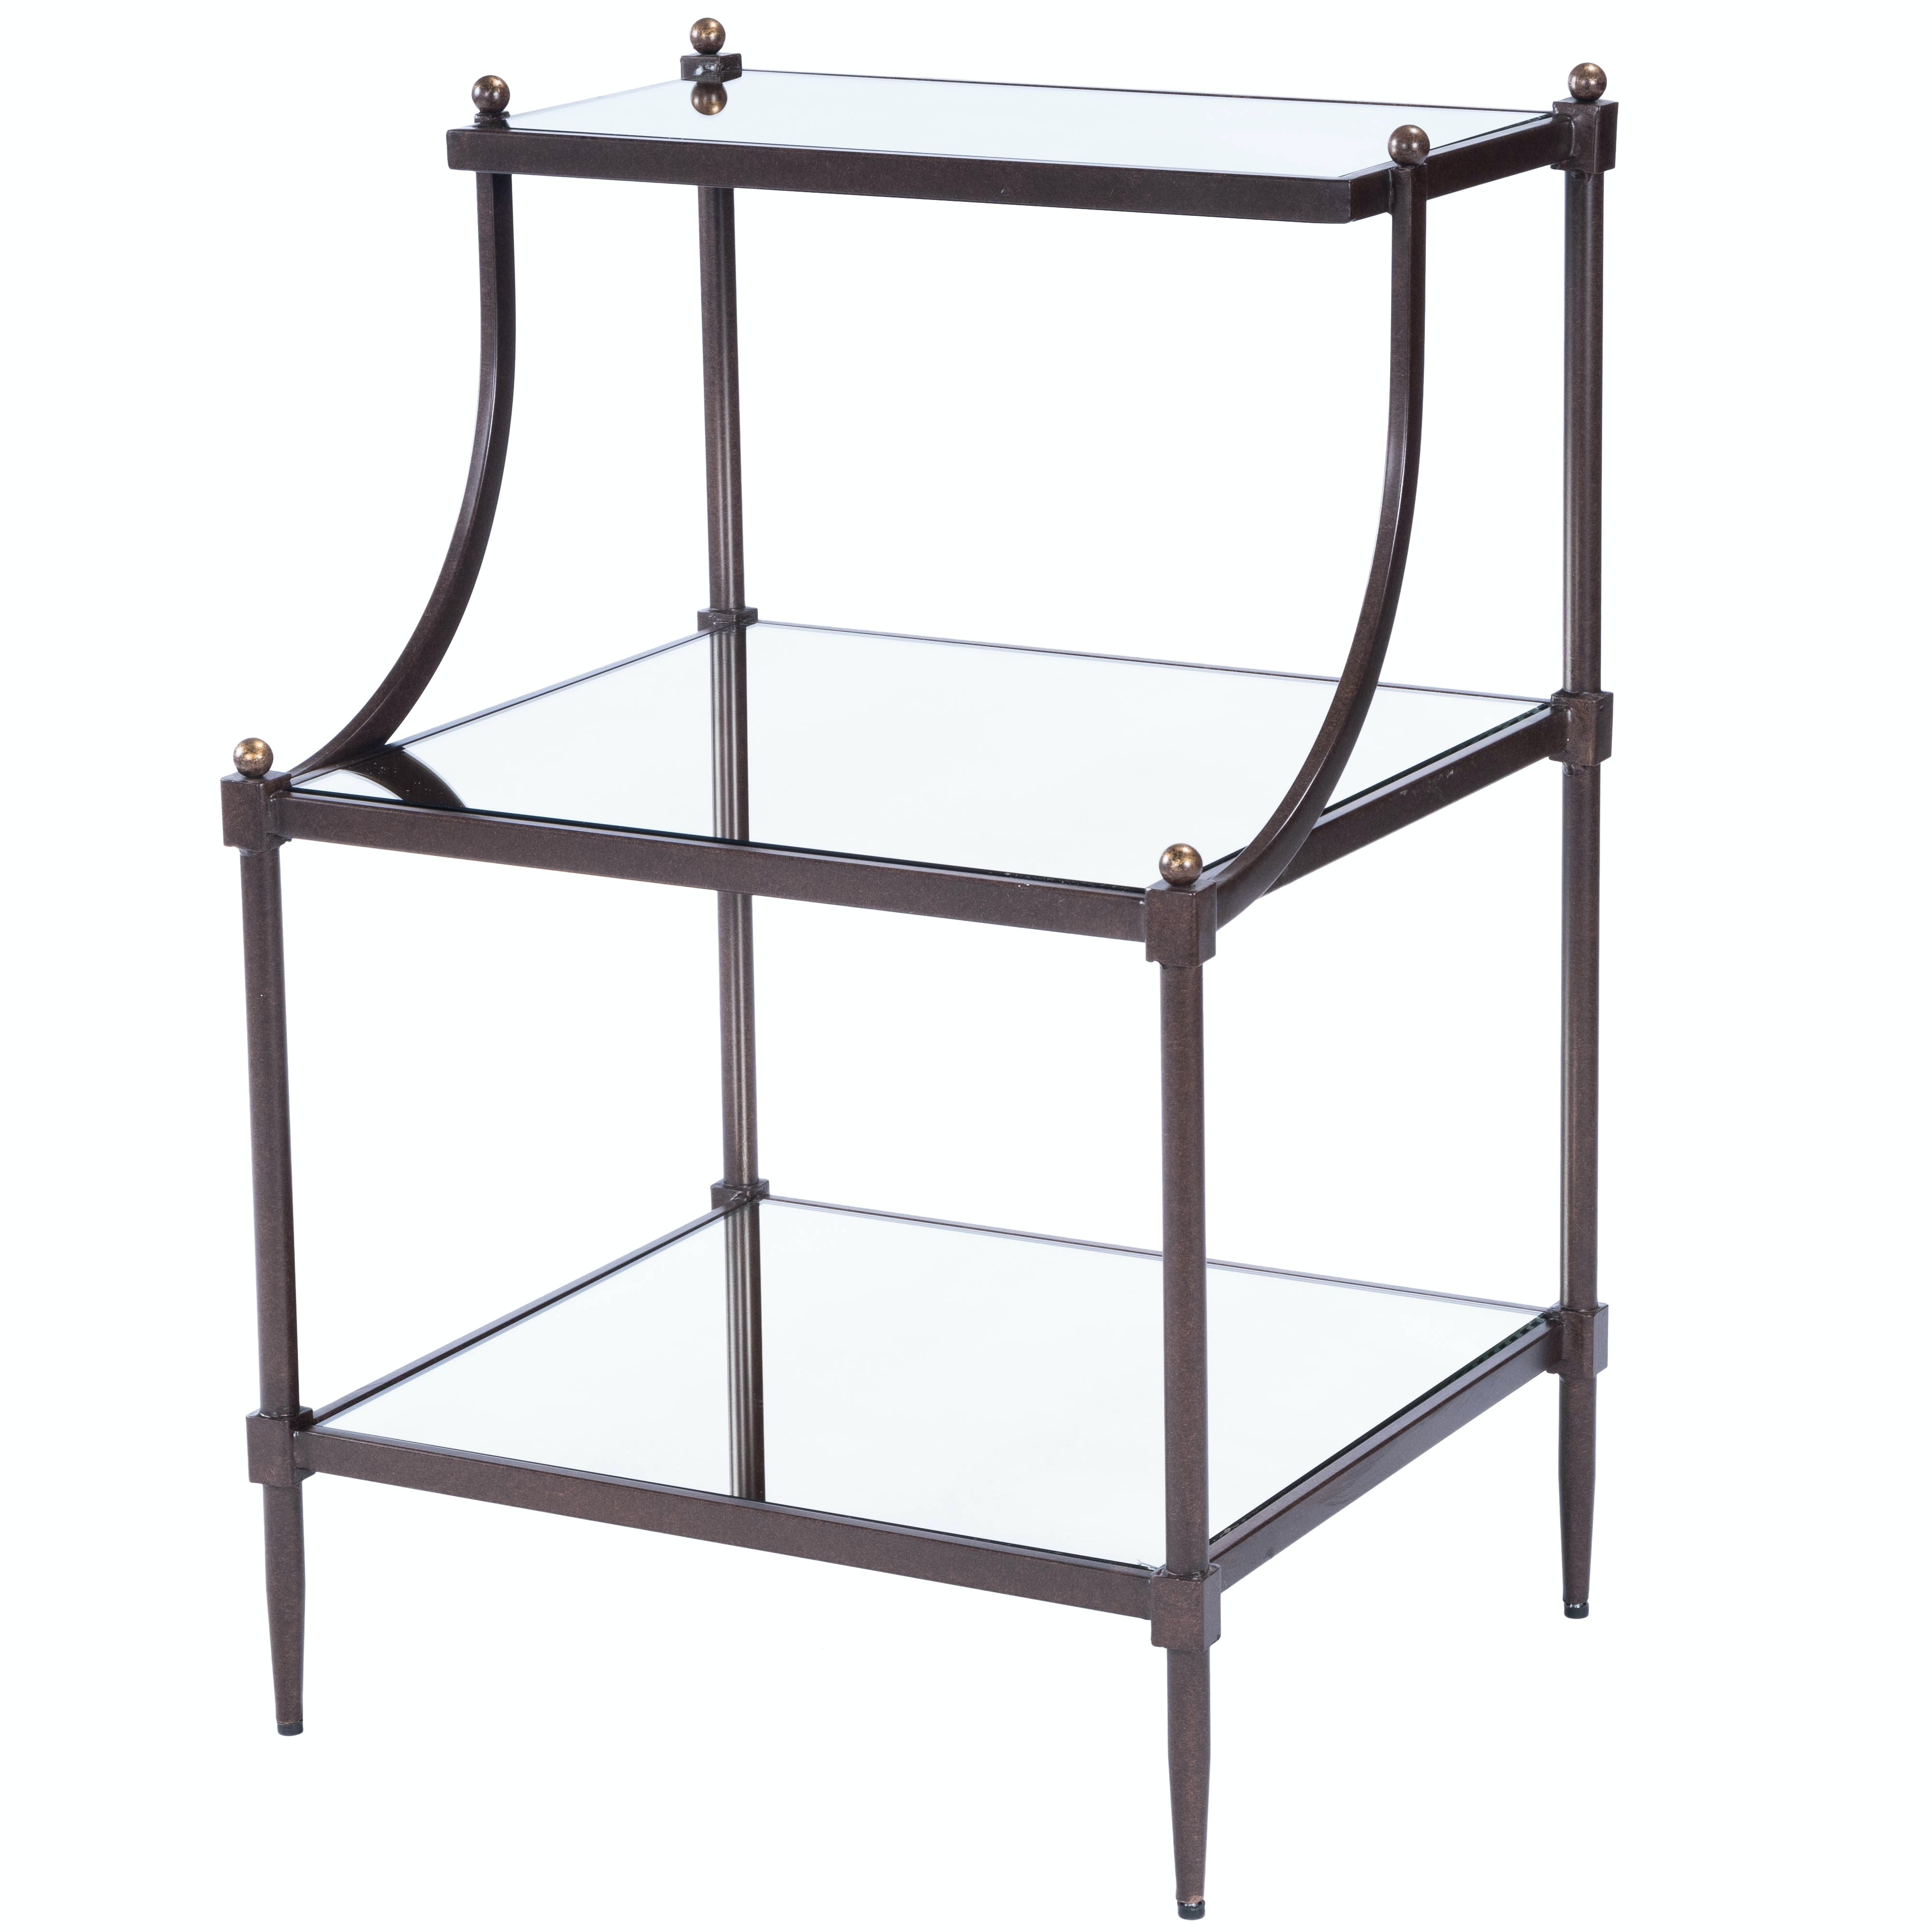 Genial Butler Specialty Company Tiered Side Table BU7015025 From Walter E. Smithe  Furniture + Design